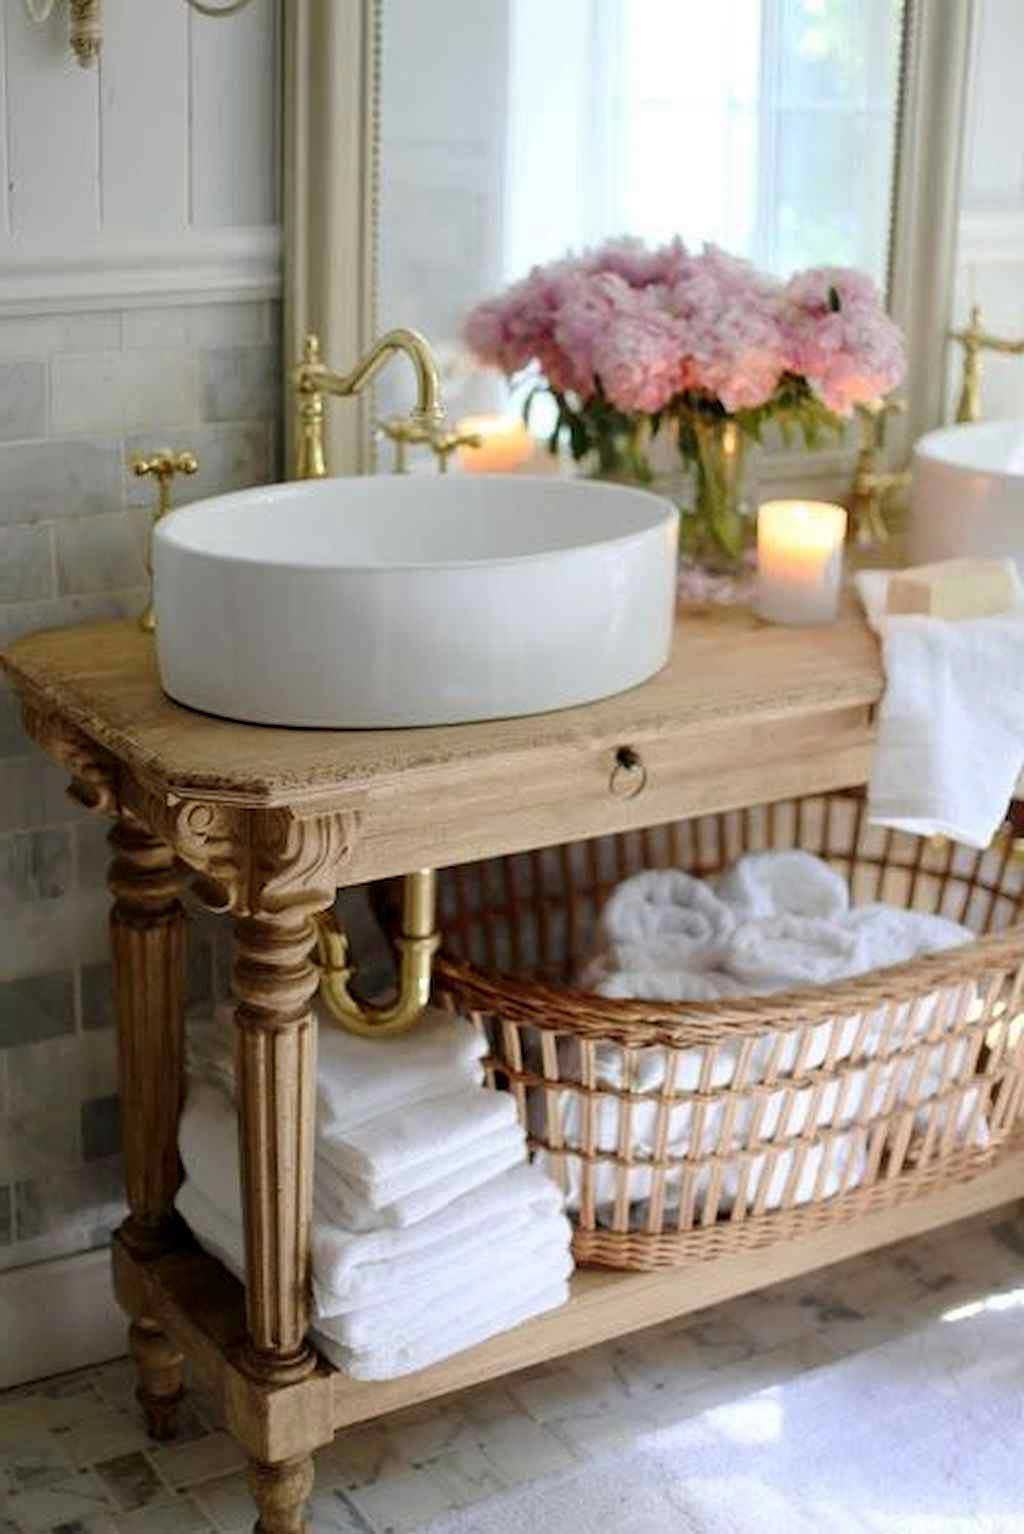 French Country Style Bathroom Design Ideas In 2020 Country Style Bathrooms Country Style Living Room French Cottage Bathroom